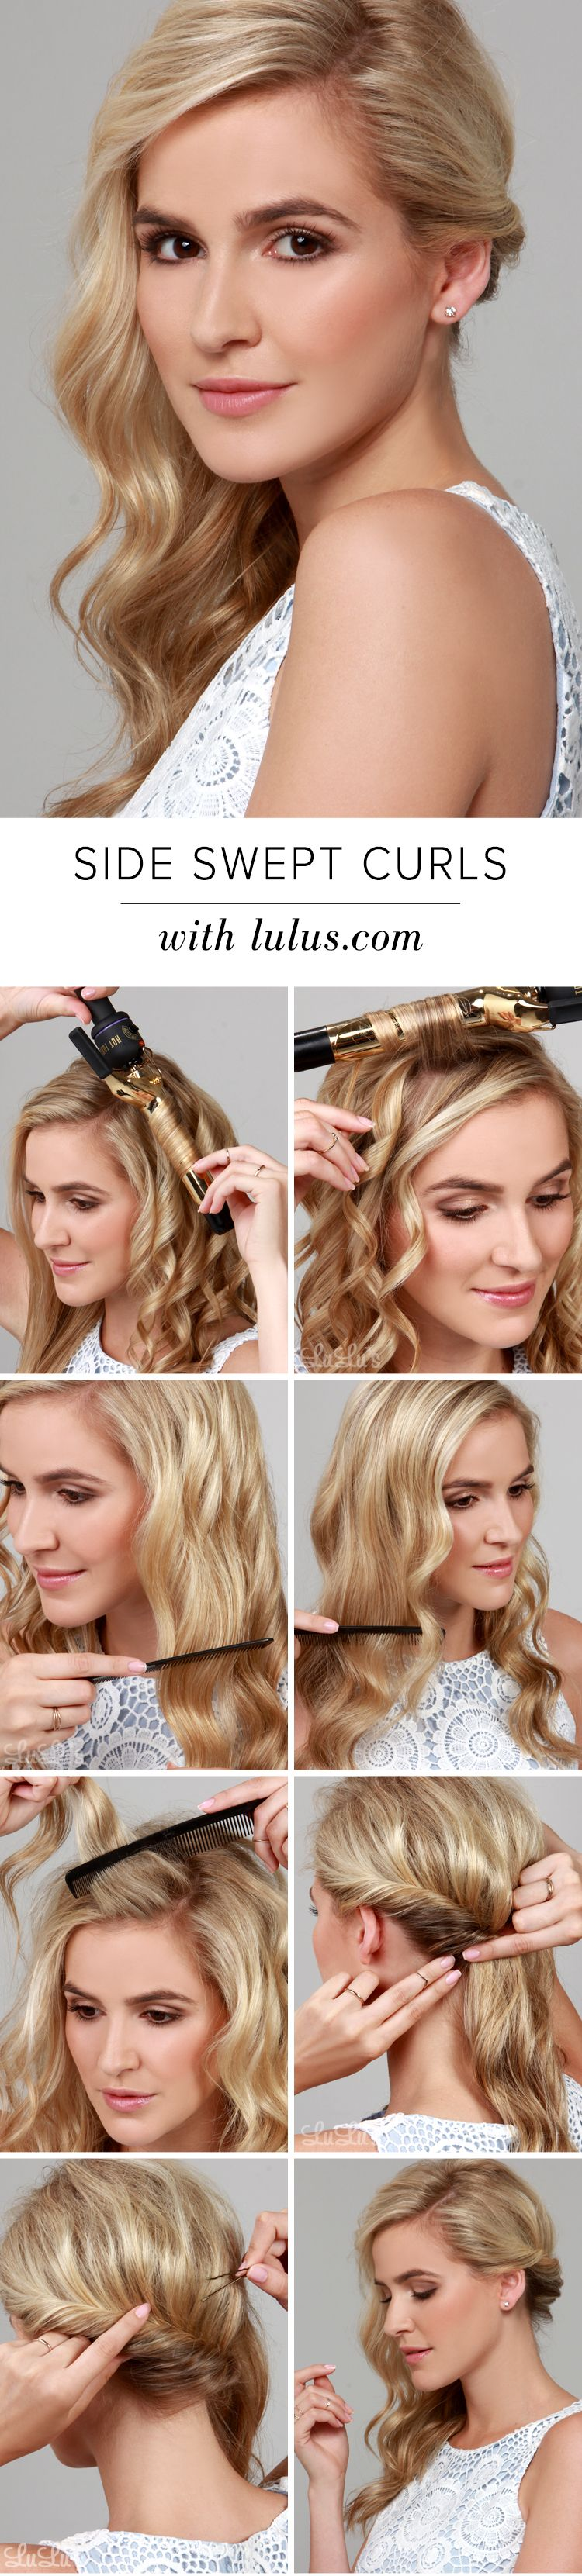 Lulus How To Side Swept Curls Hair Tutorial